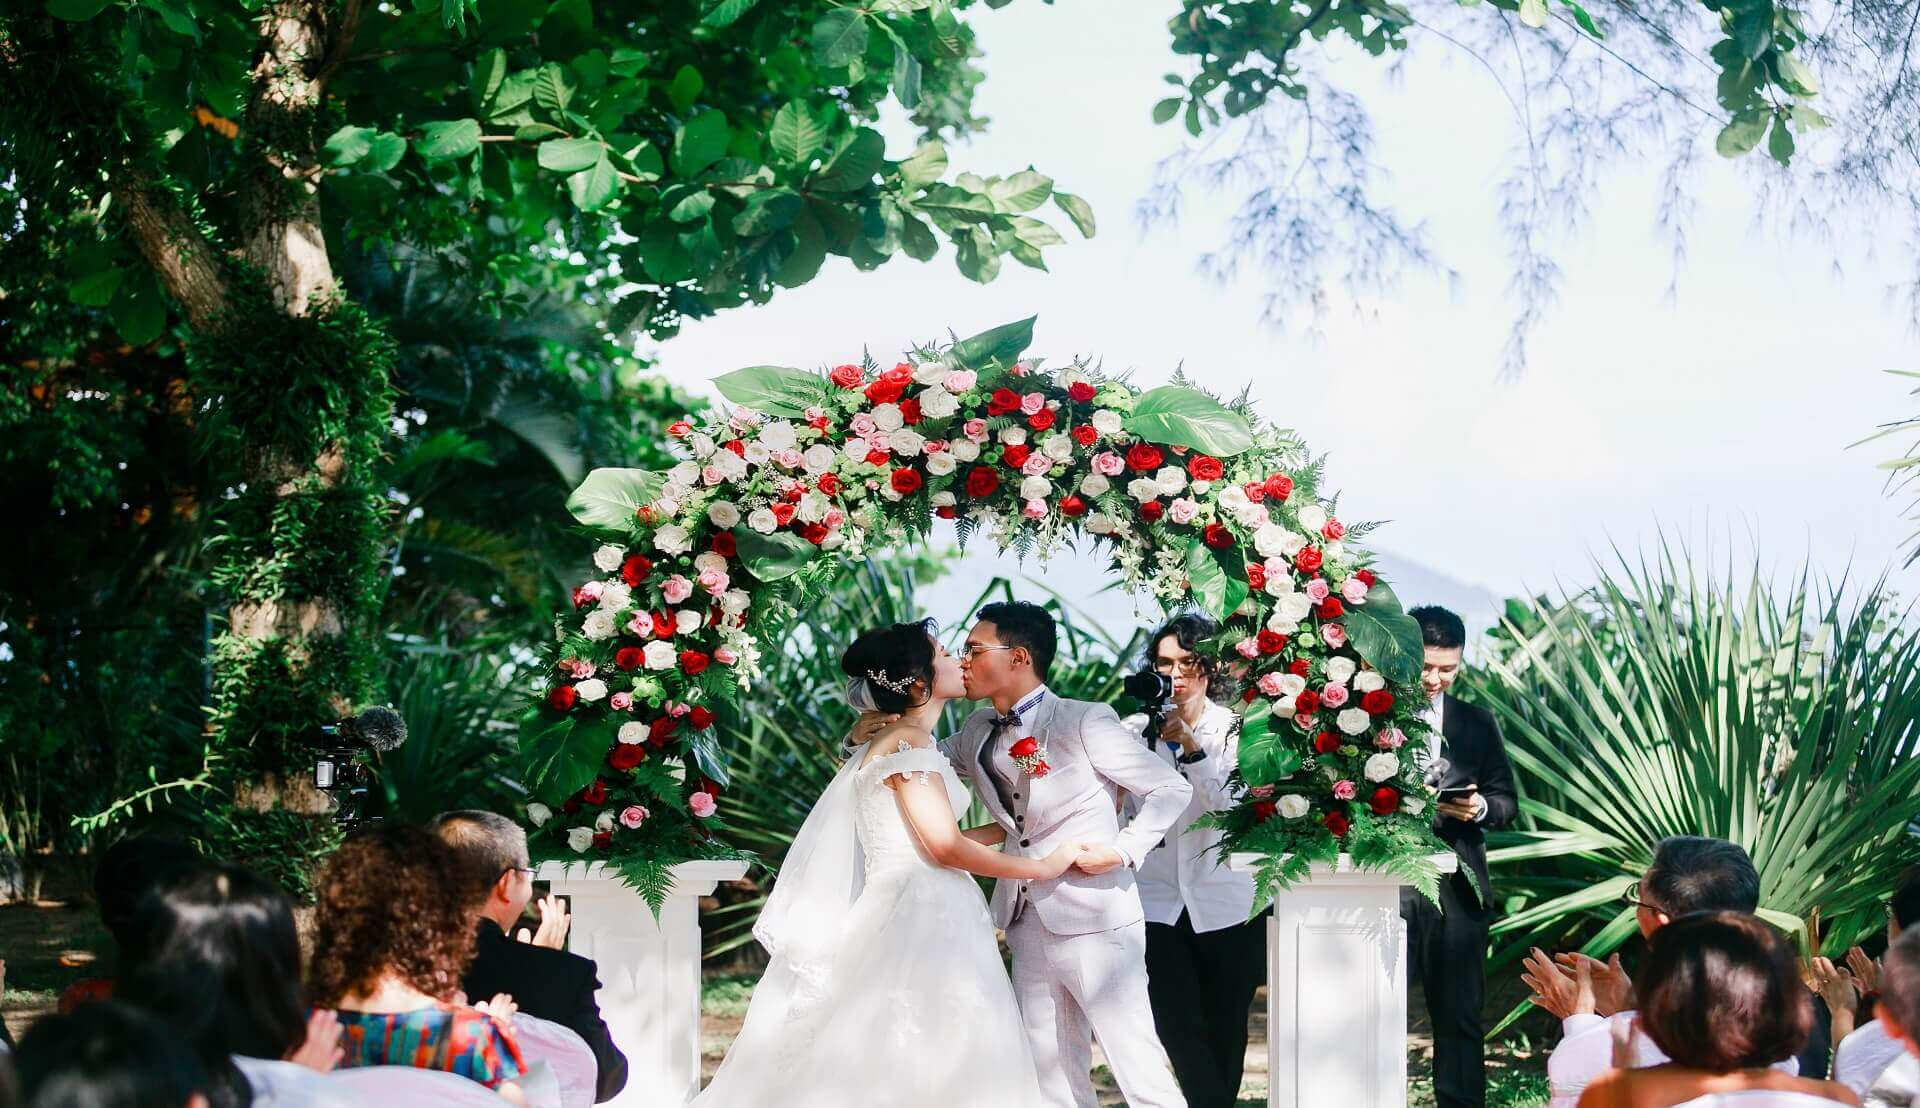 Sugar & Spice Events - Newlywed couple dip kiss outdoor ceremony flowers garden wedding beach floral arch